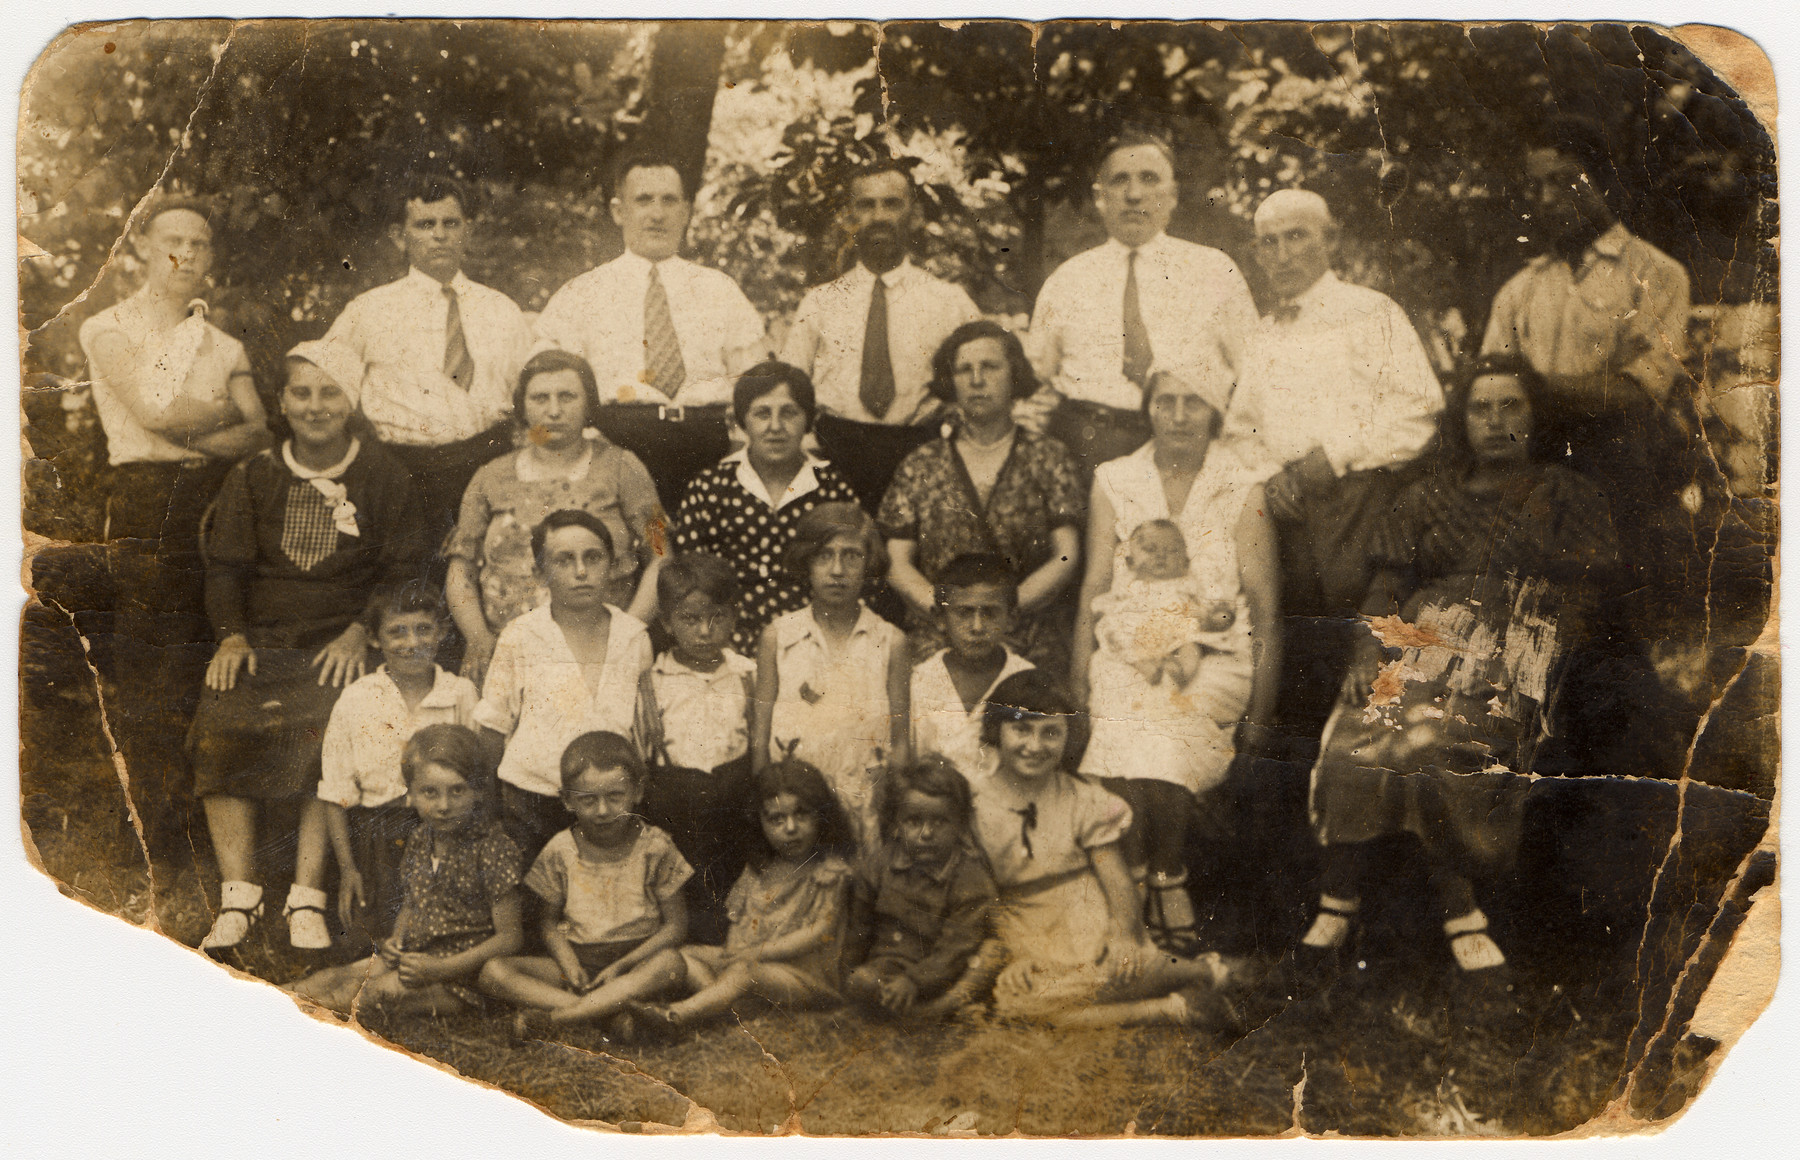 Group portrait of an extended Jewish family in Poland in the 1930s of whom only six survived.  Pictured are the family of Sucher Ceder.  Top row (left to right) are Motel Ceder, Yosel, Yacubowicz, Shloime Ceder, Zukin, Sucher Ceder (donor's father) and Mendel Ceder.  Second row from the top: Malca, Yacubowicz's wife, Chana Ceder, Brandle Rosen (nee Ceder), Mania Ceder (donor's mother) with the donor Irena on her lap, and Dobcia.  Third row from the top: three Zukin children, Sara Ceder (donor's sister), Mordechai Ceder.  Front row: Three children of Yosel, Lutek and Bela.